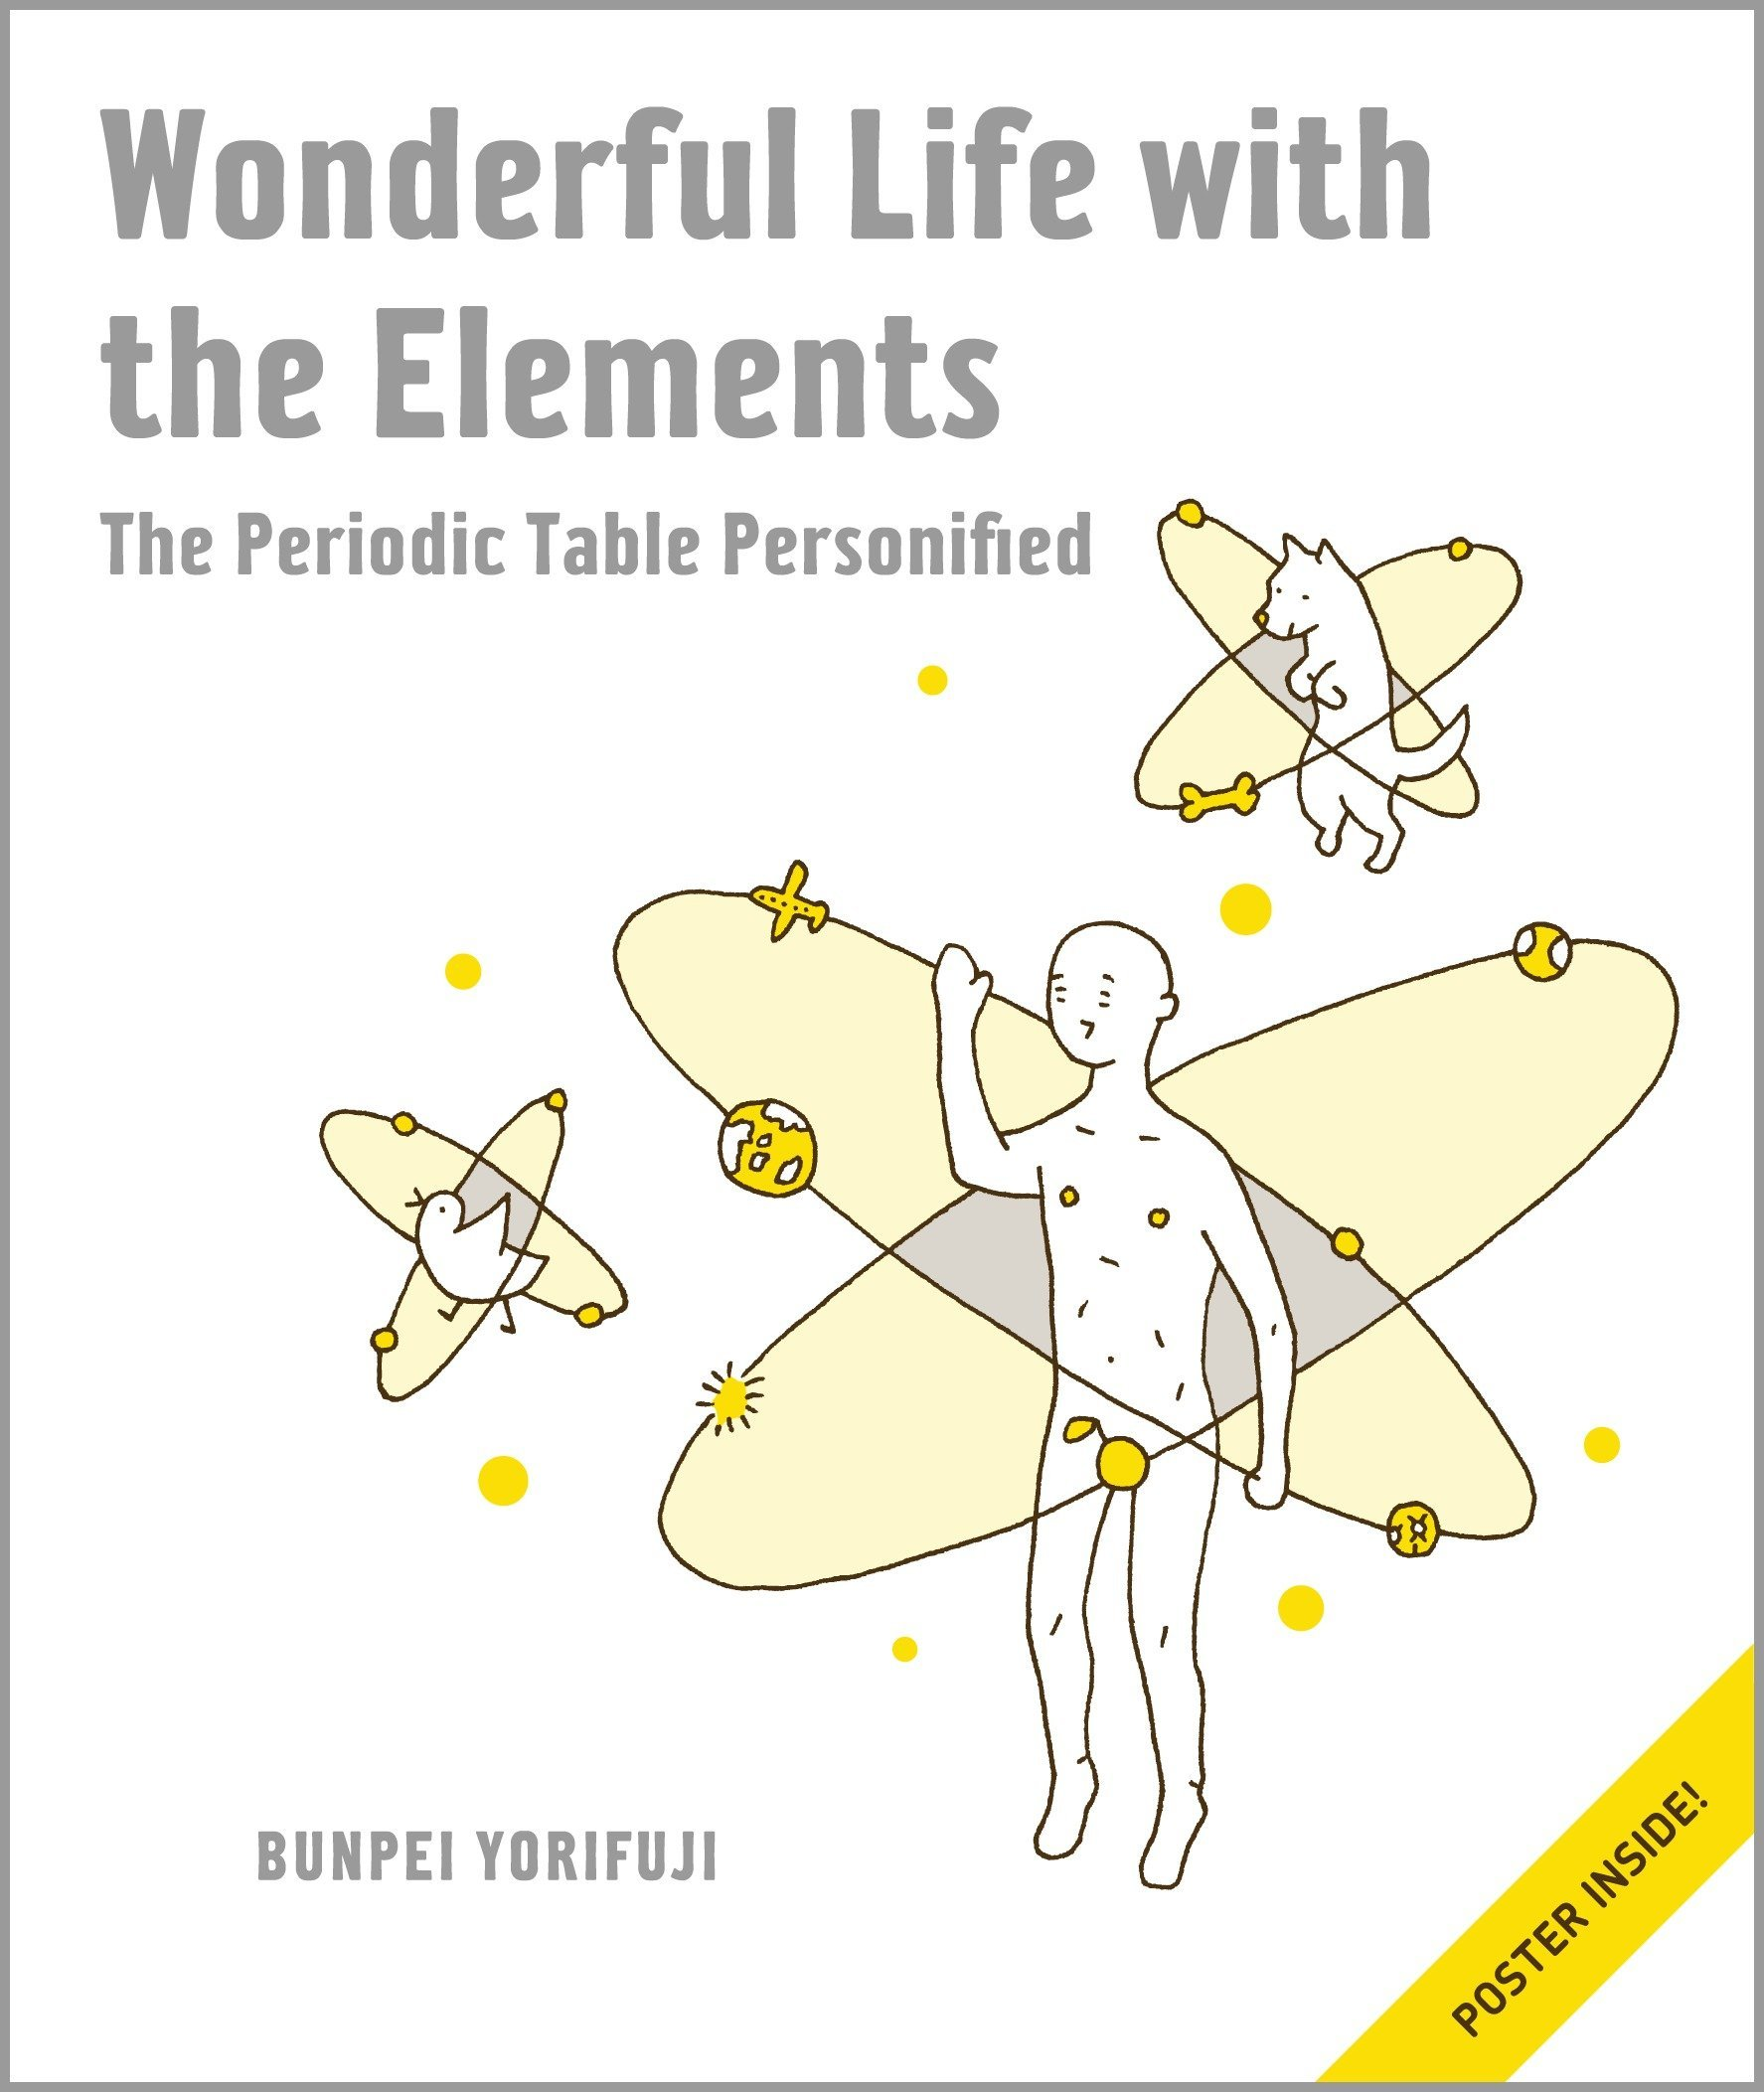 Wonderful Life with the Elements: The Periodic Table Personified:  Amazon.co.uk: Bunpei Yorifuji: 9781593274238: Books